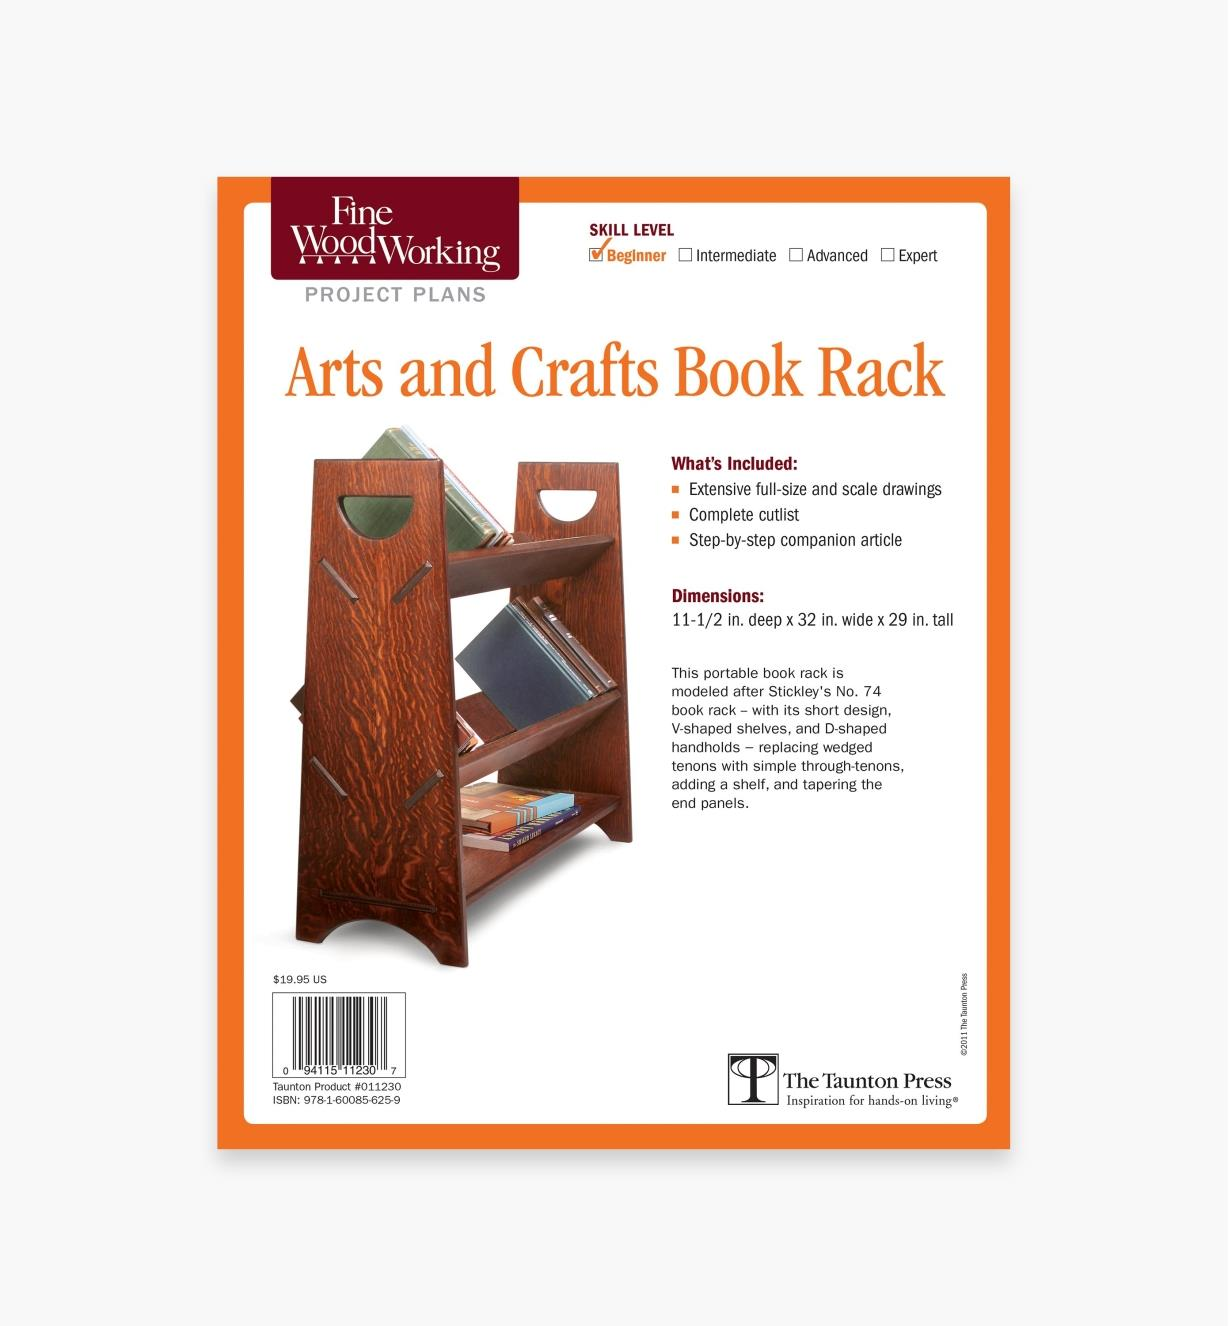 73L2528 - Arts and Crafts Book Rack Plan